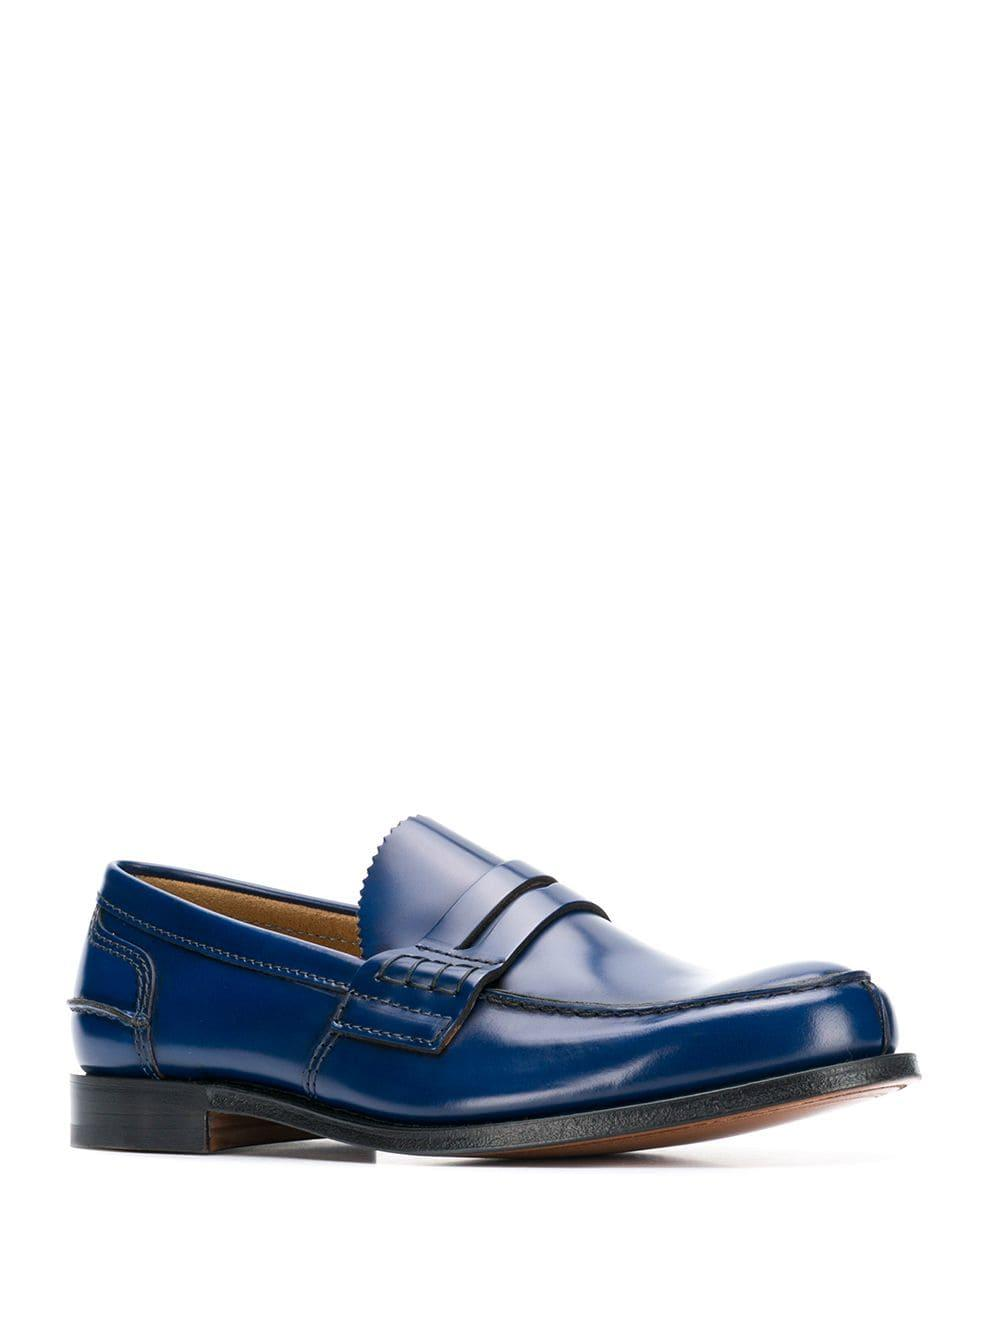 312373af98d Lyst - Church s Tunbridge Penny Loafers in Blue for Men